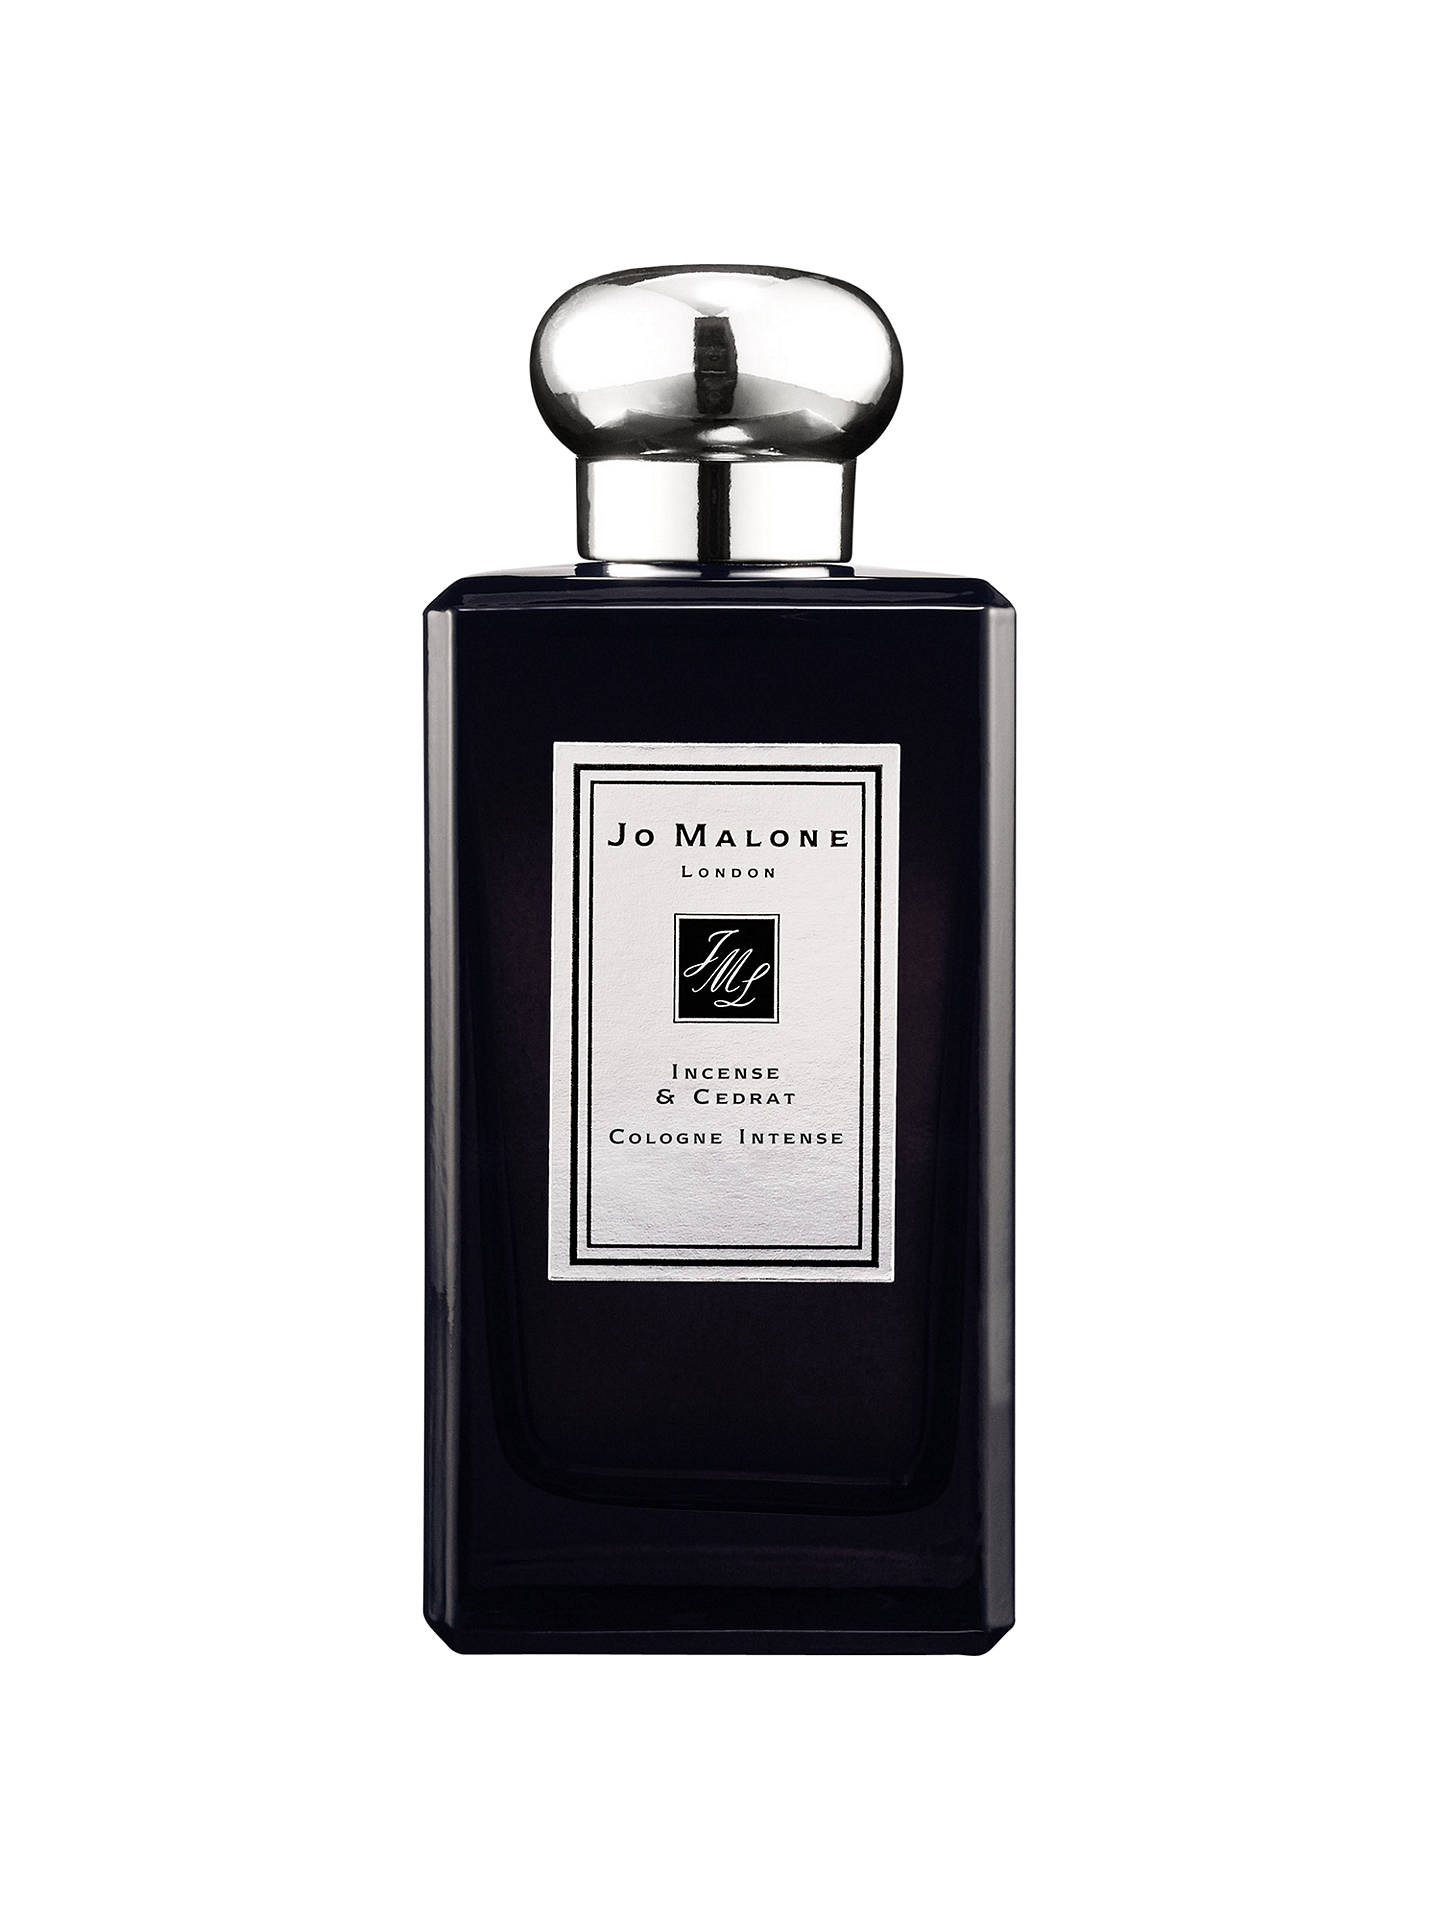 BuyJo Malone London Incense & Cedrat Cologne Intense, 100ml Online at johnlewis.com